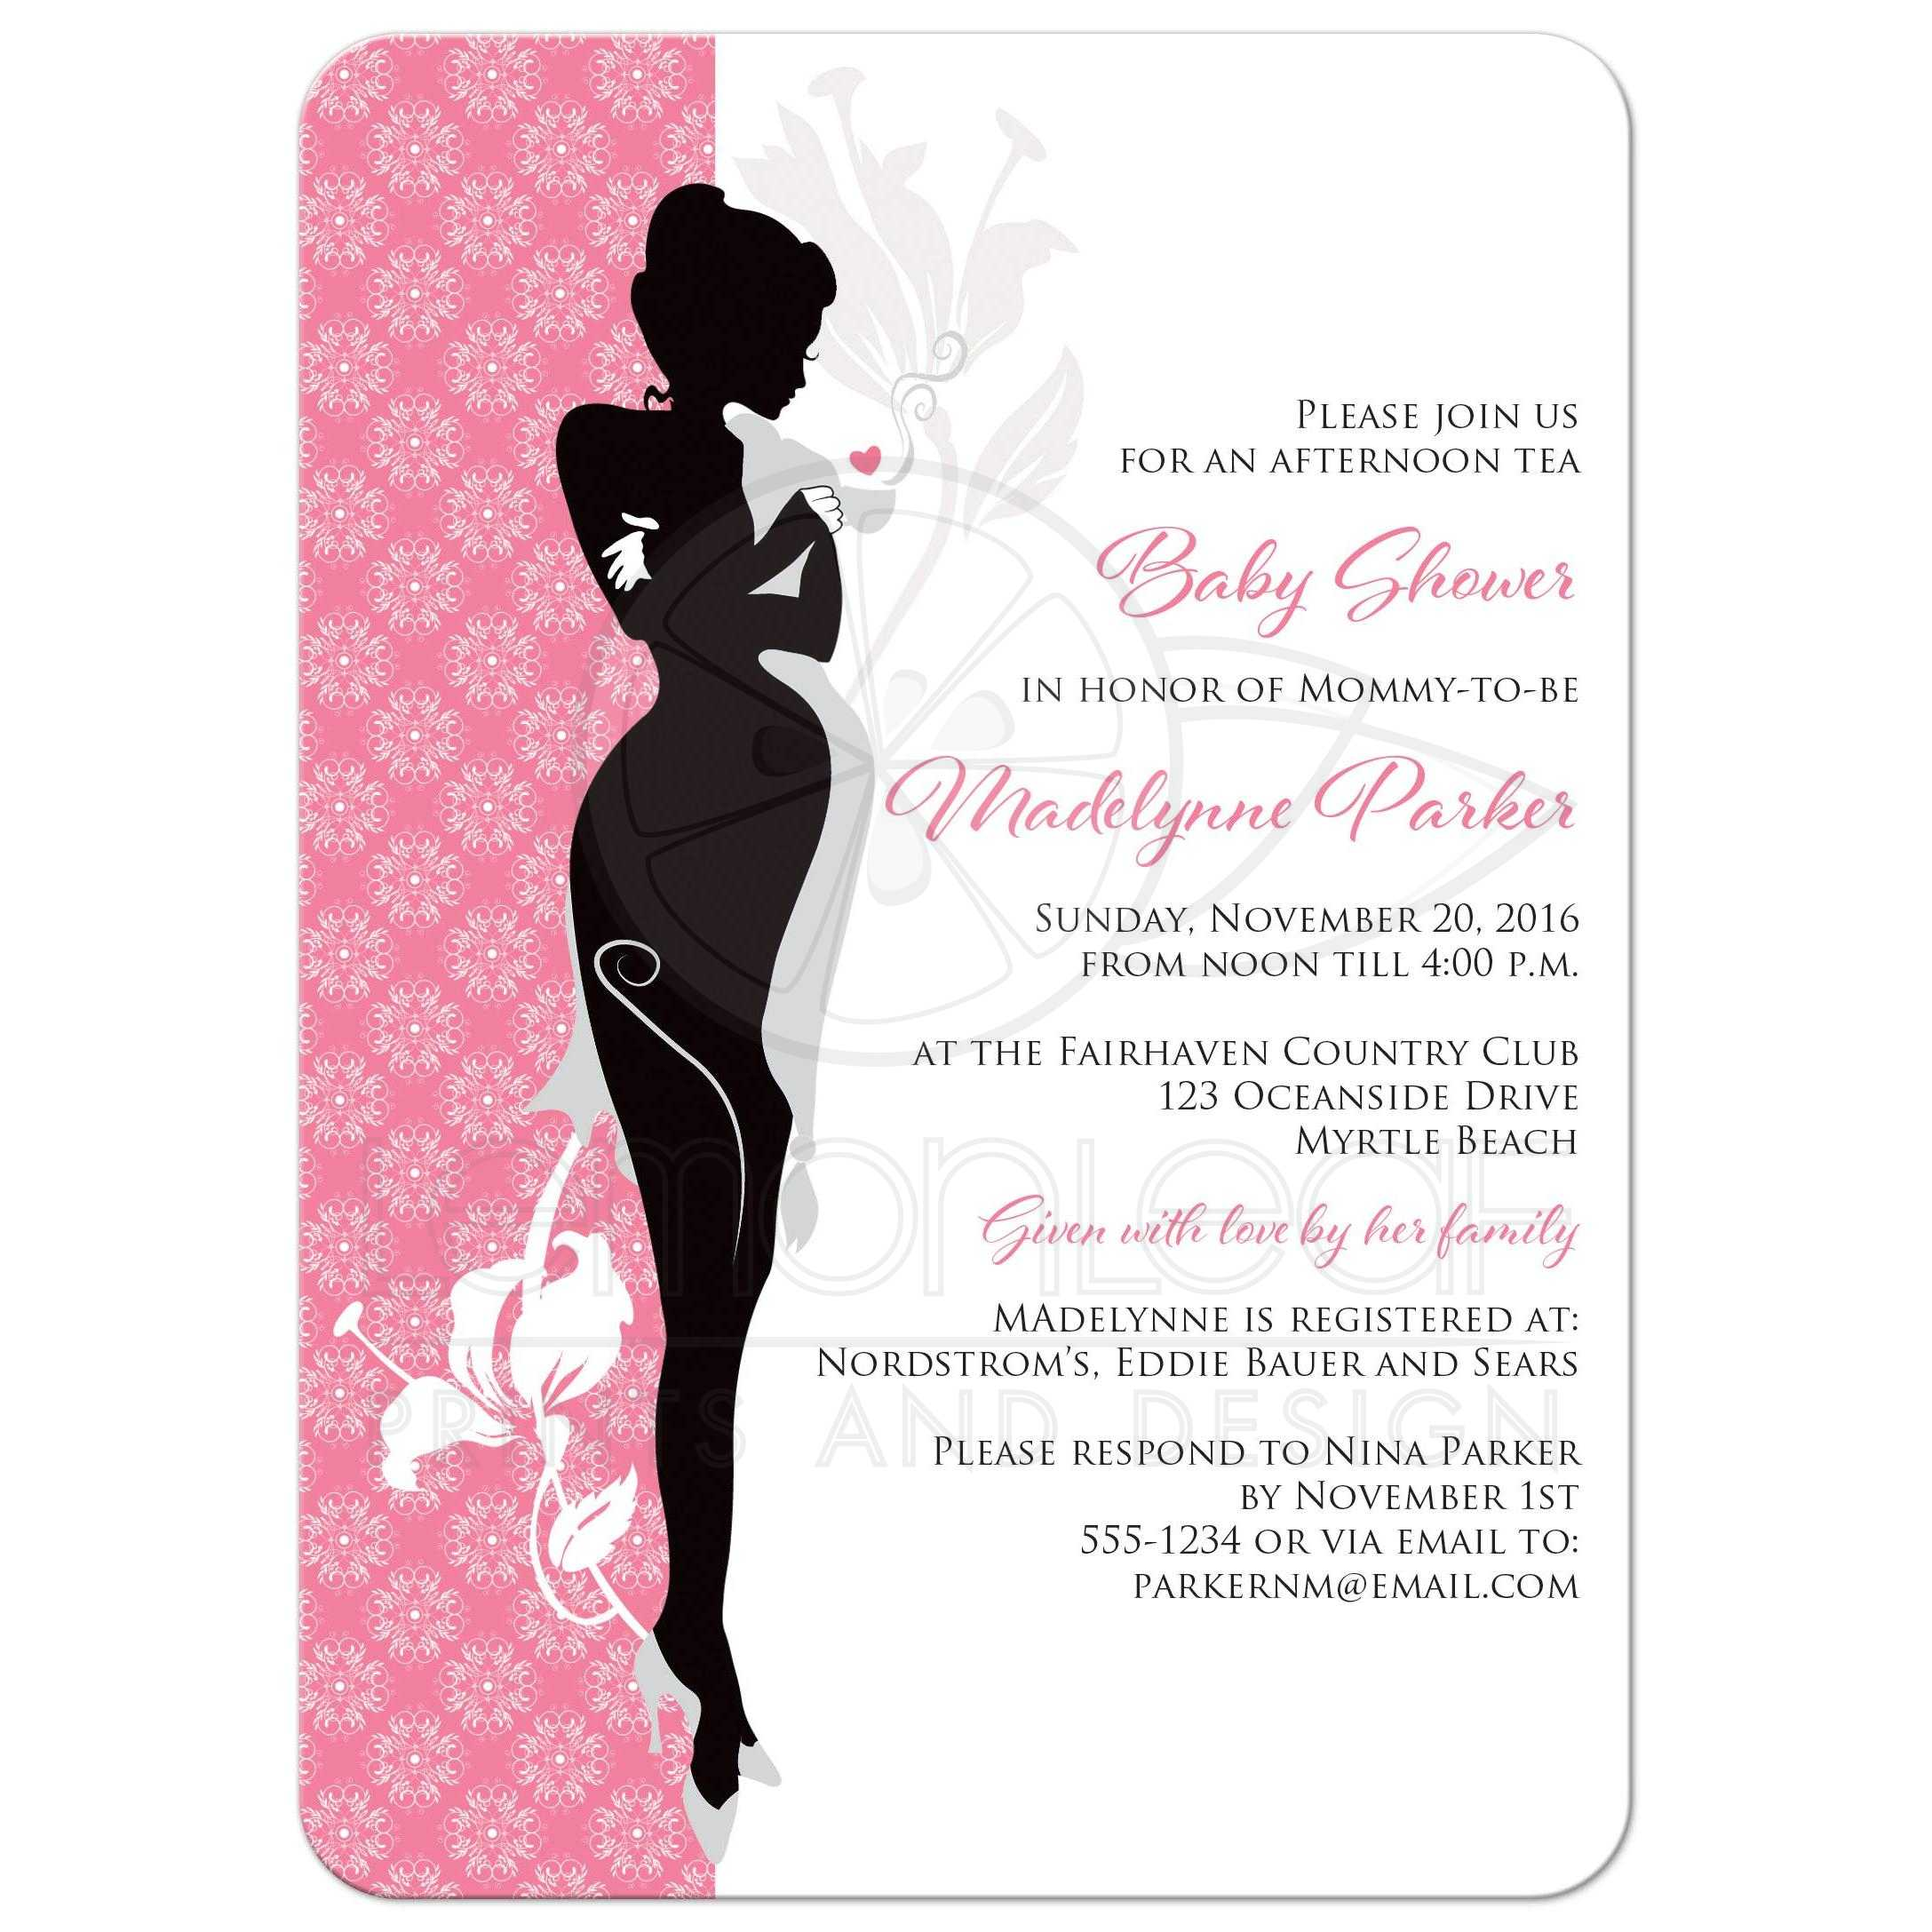 ... Great Modern Pink, Black, White And Grey Damask Pattern Baby Shower  Invites With Silhouette ...